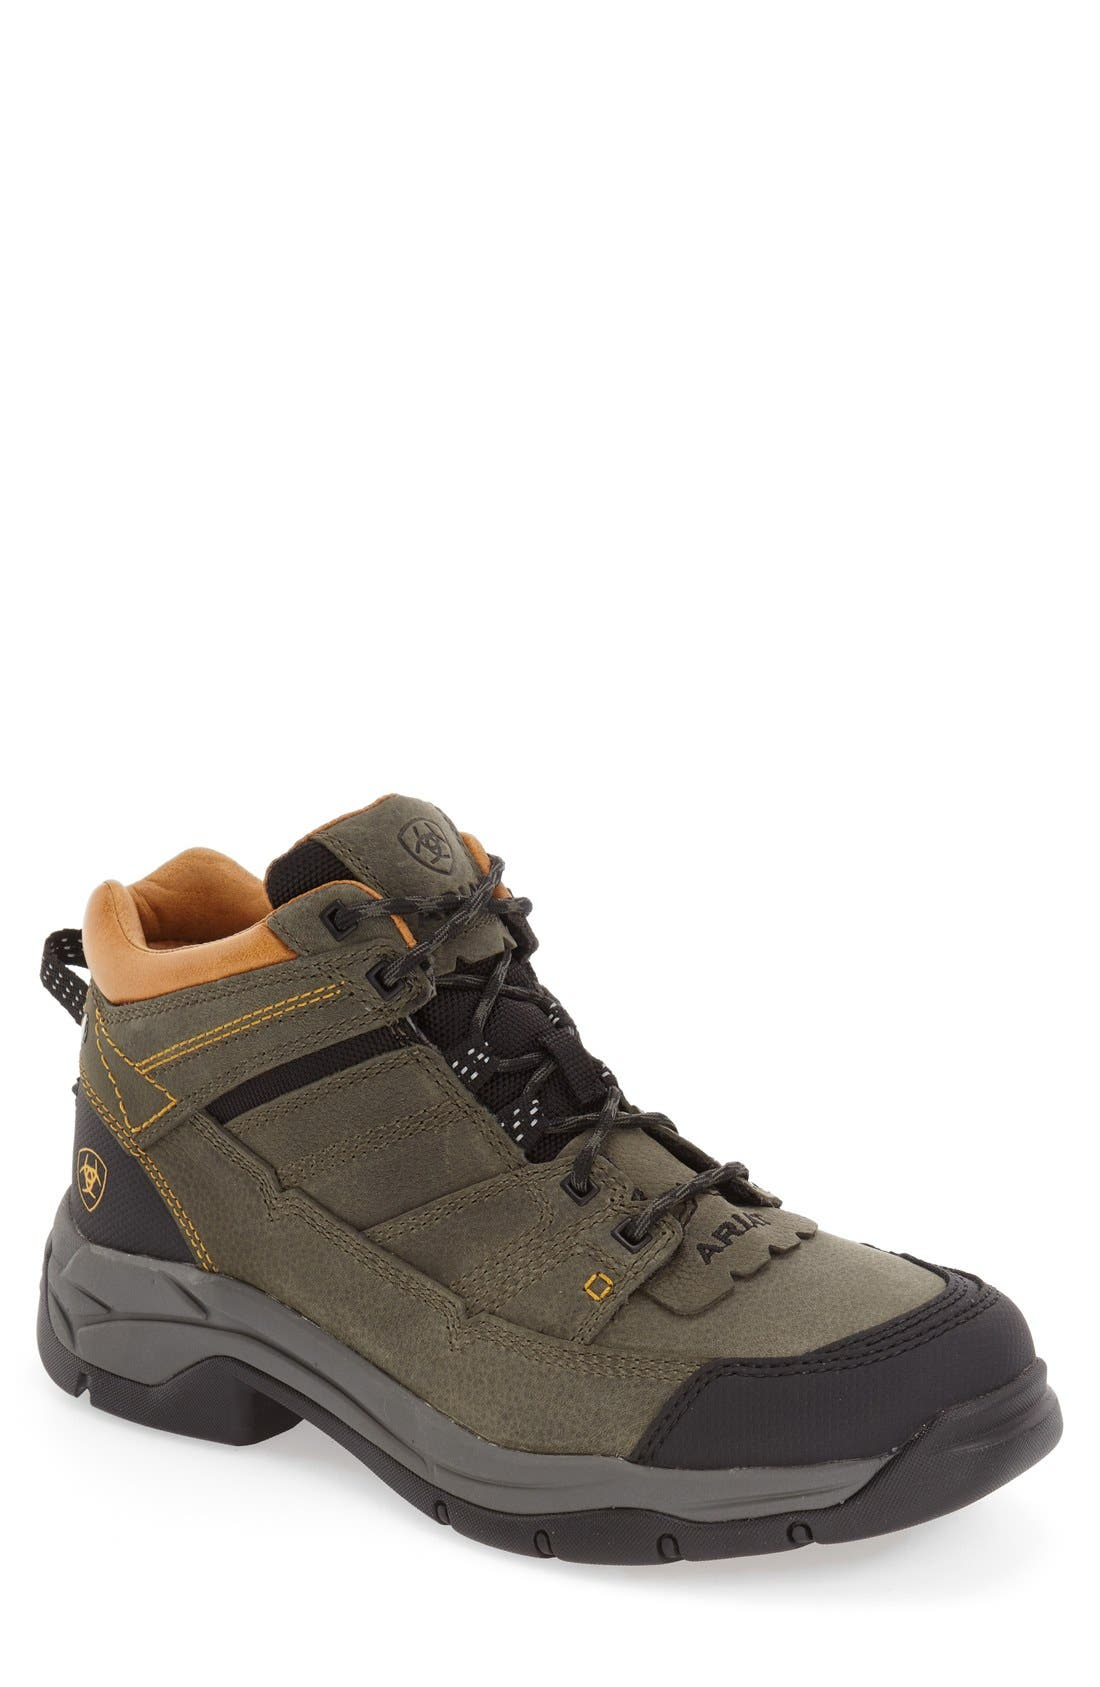 ARIAT 'Terrain Pro' Waterproof Hiking Boot